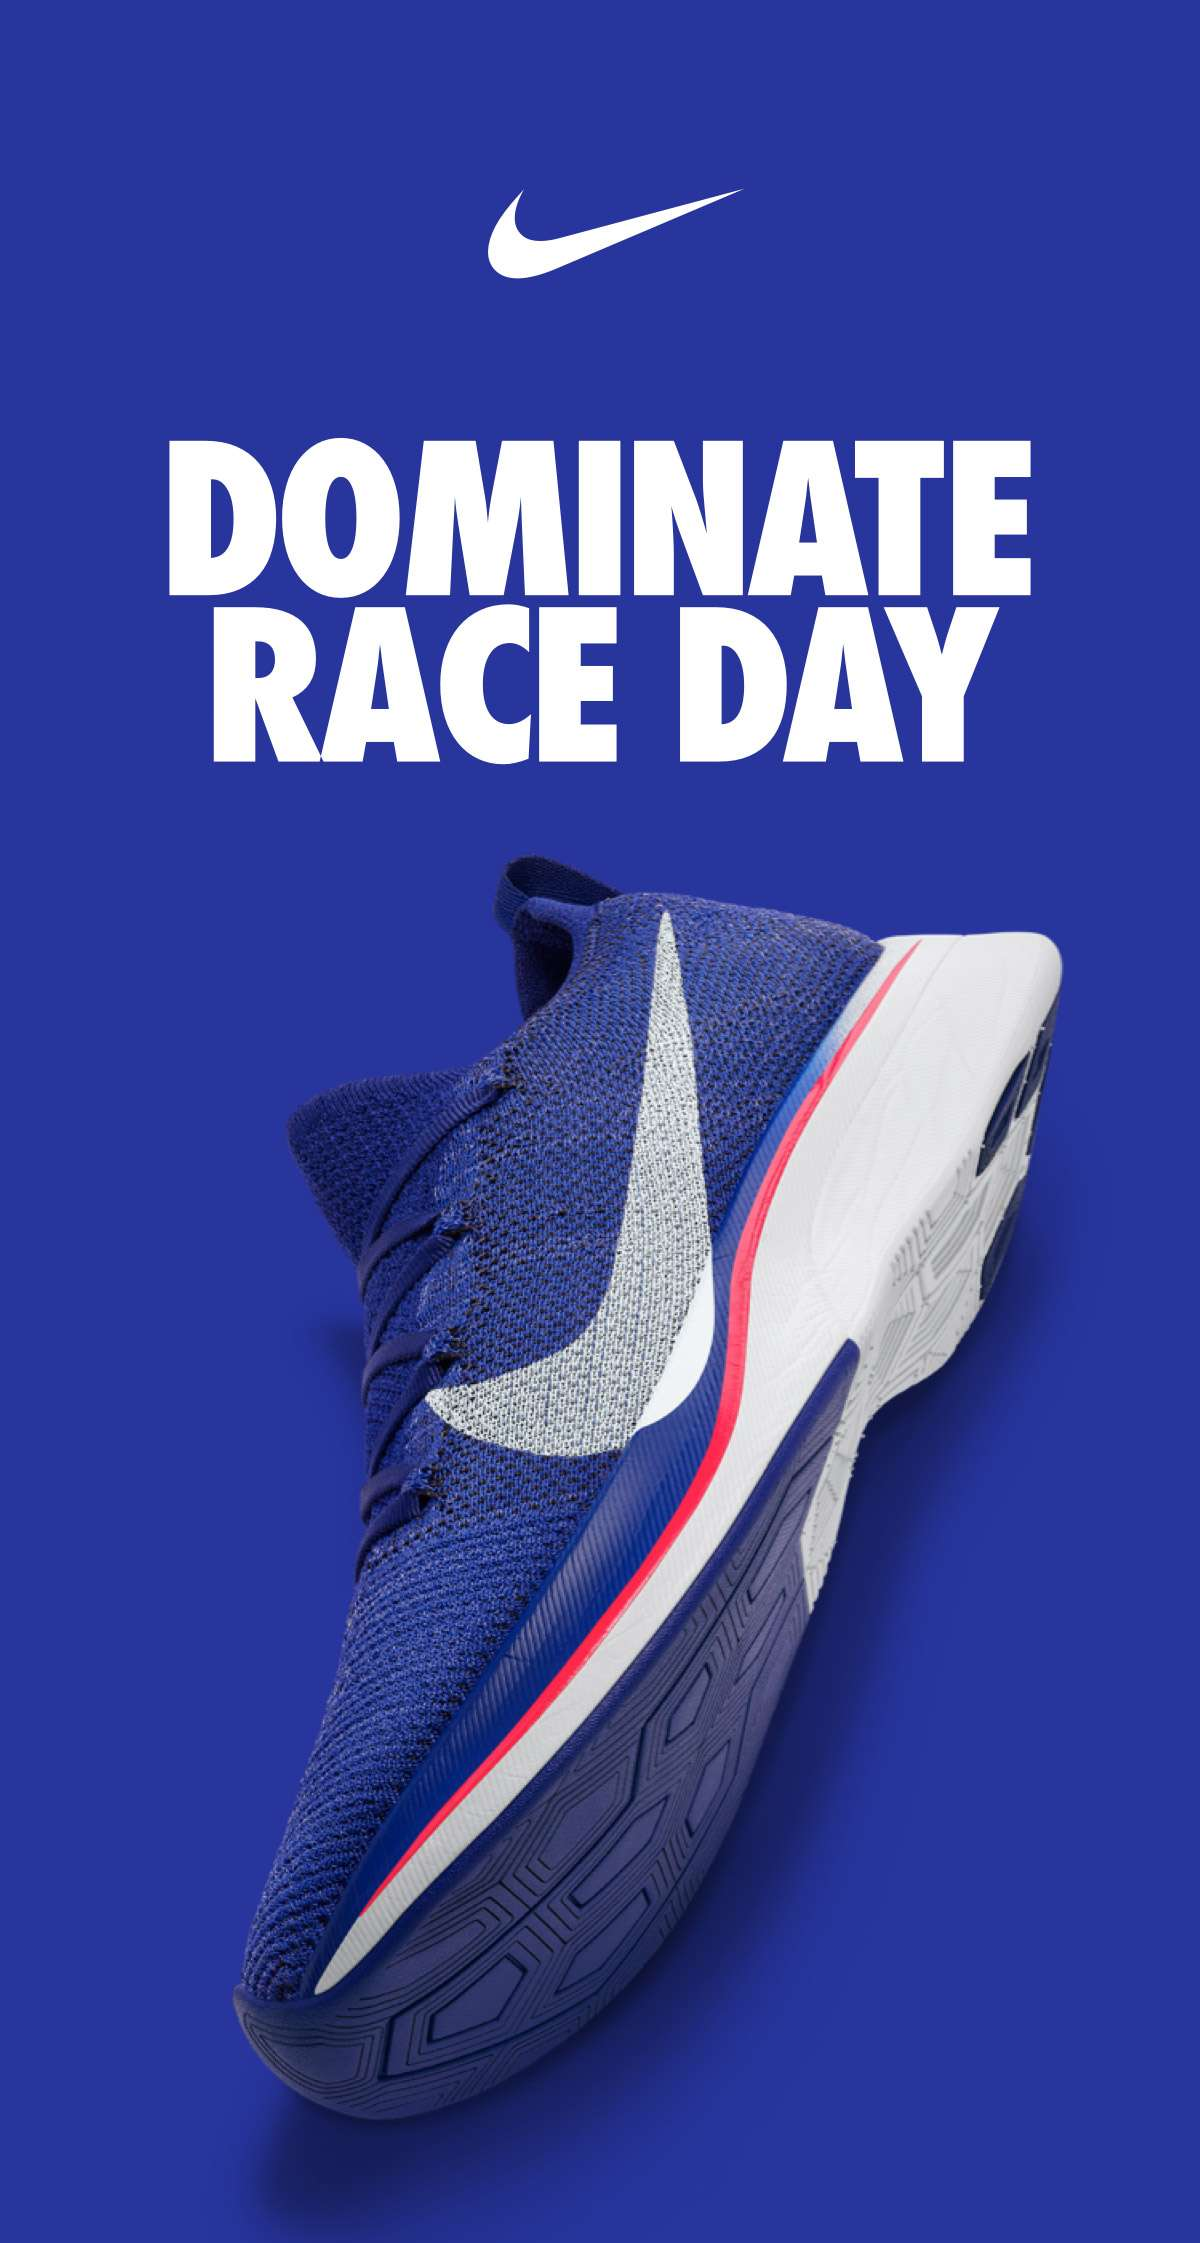 NIKE | DOMINATE RACE DAY